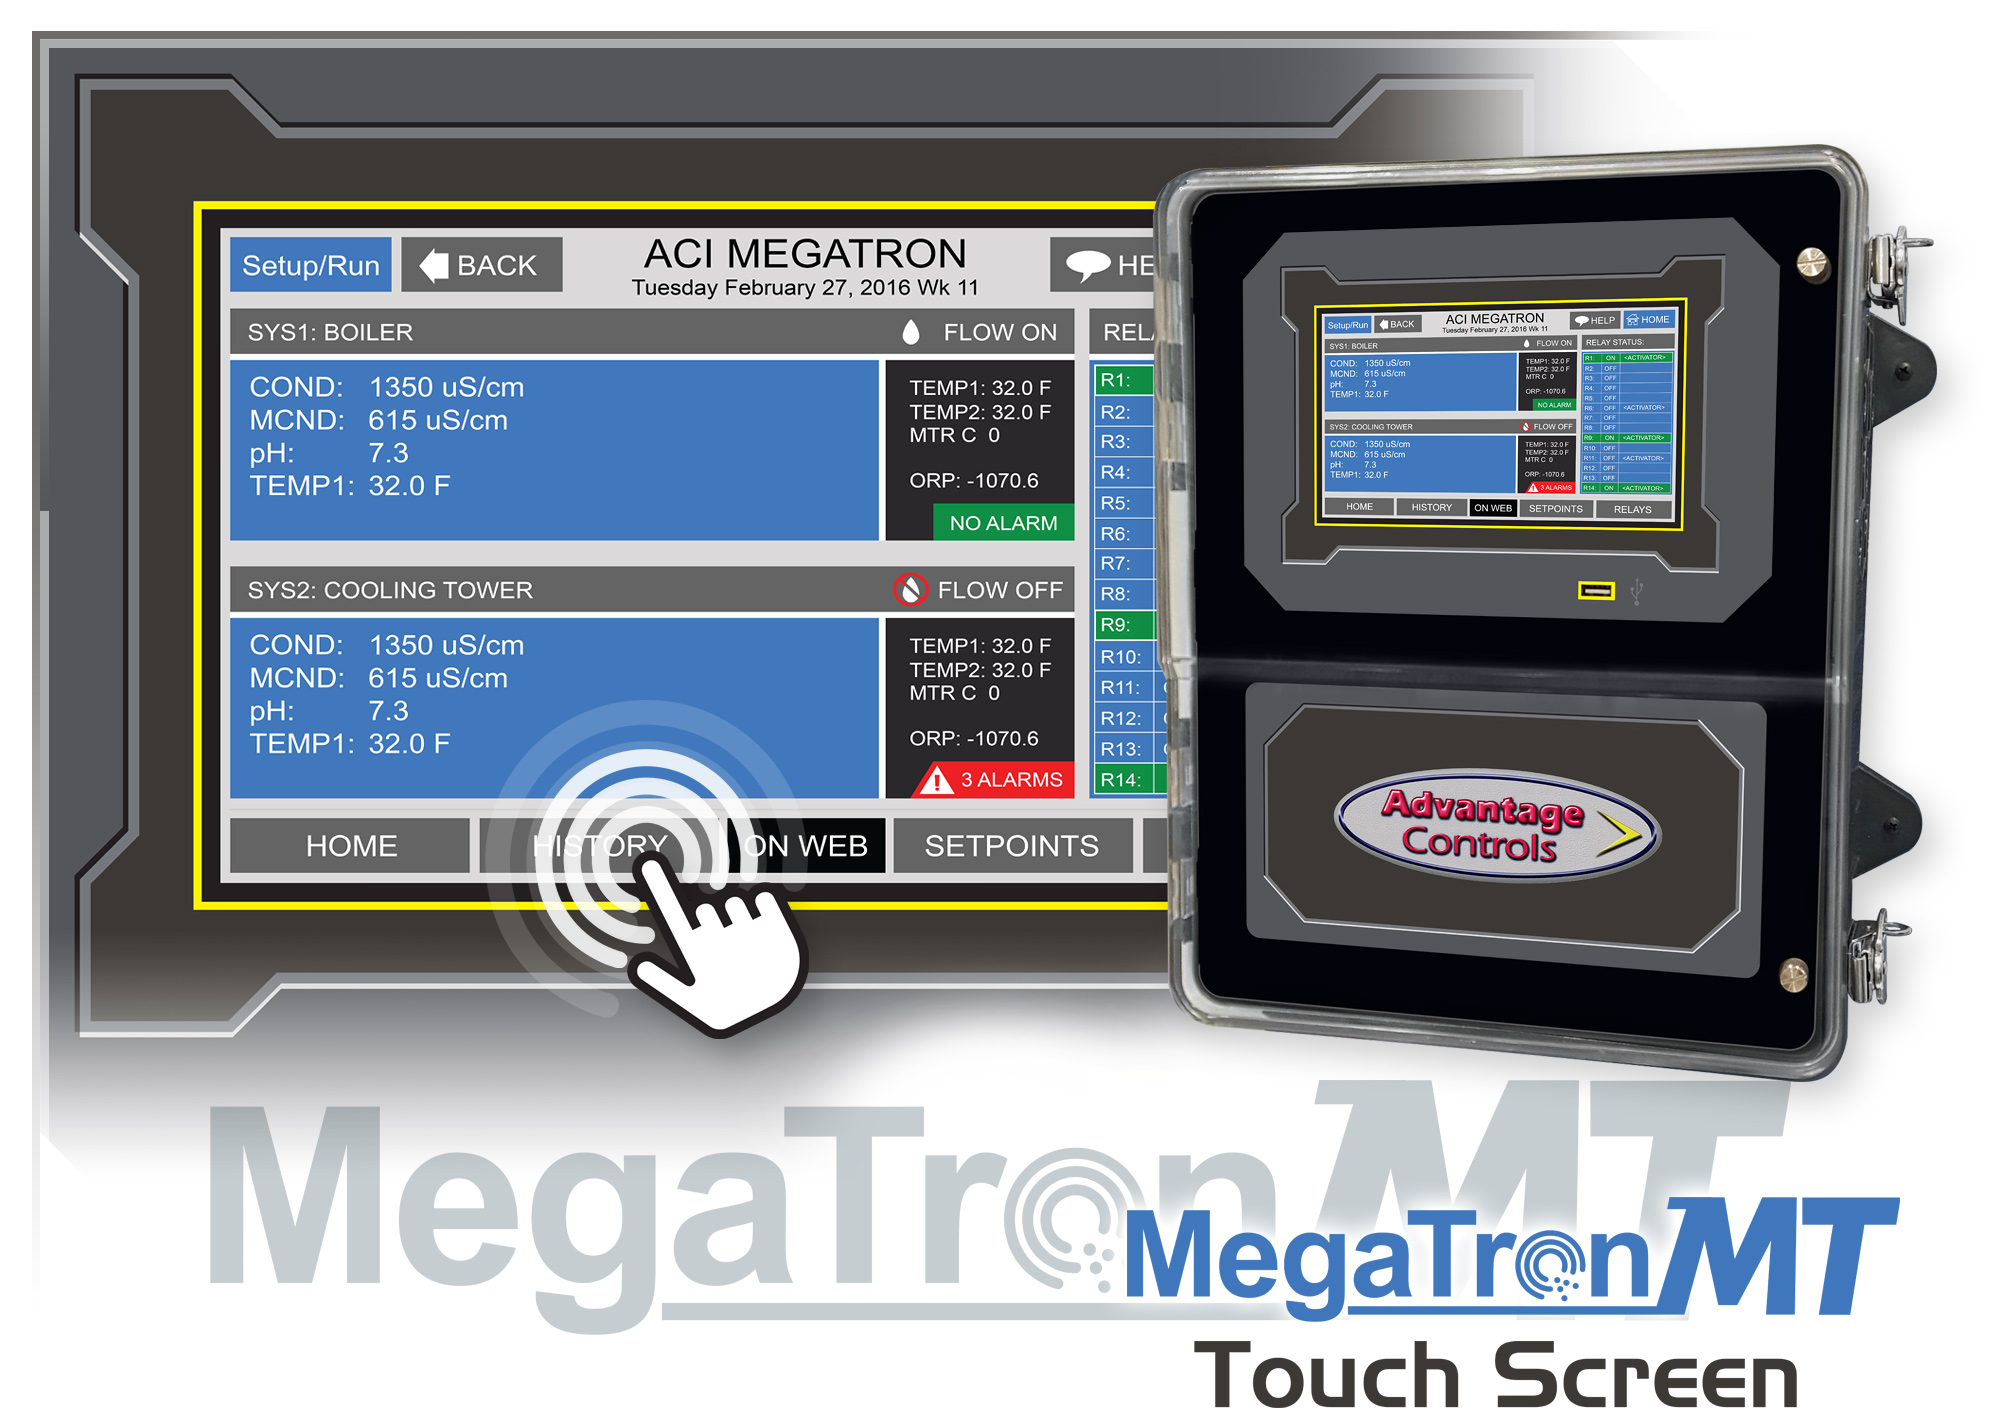 MegaTronMT touch screen controller demo at AWT2018